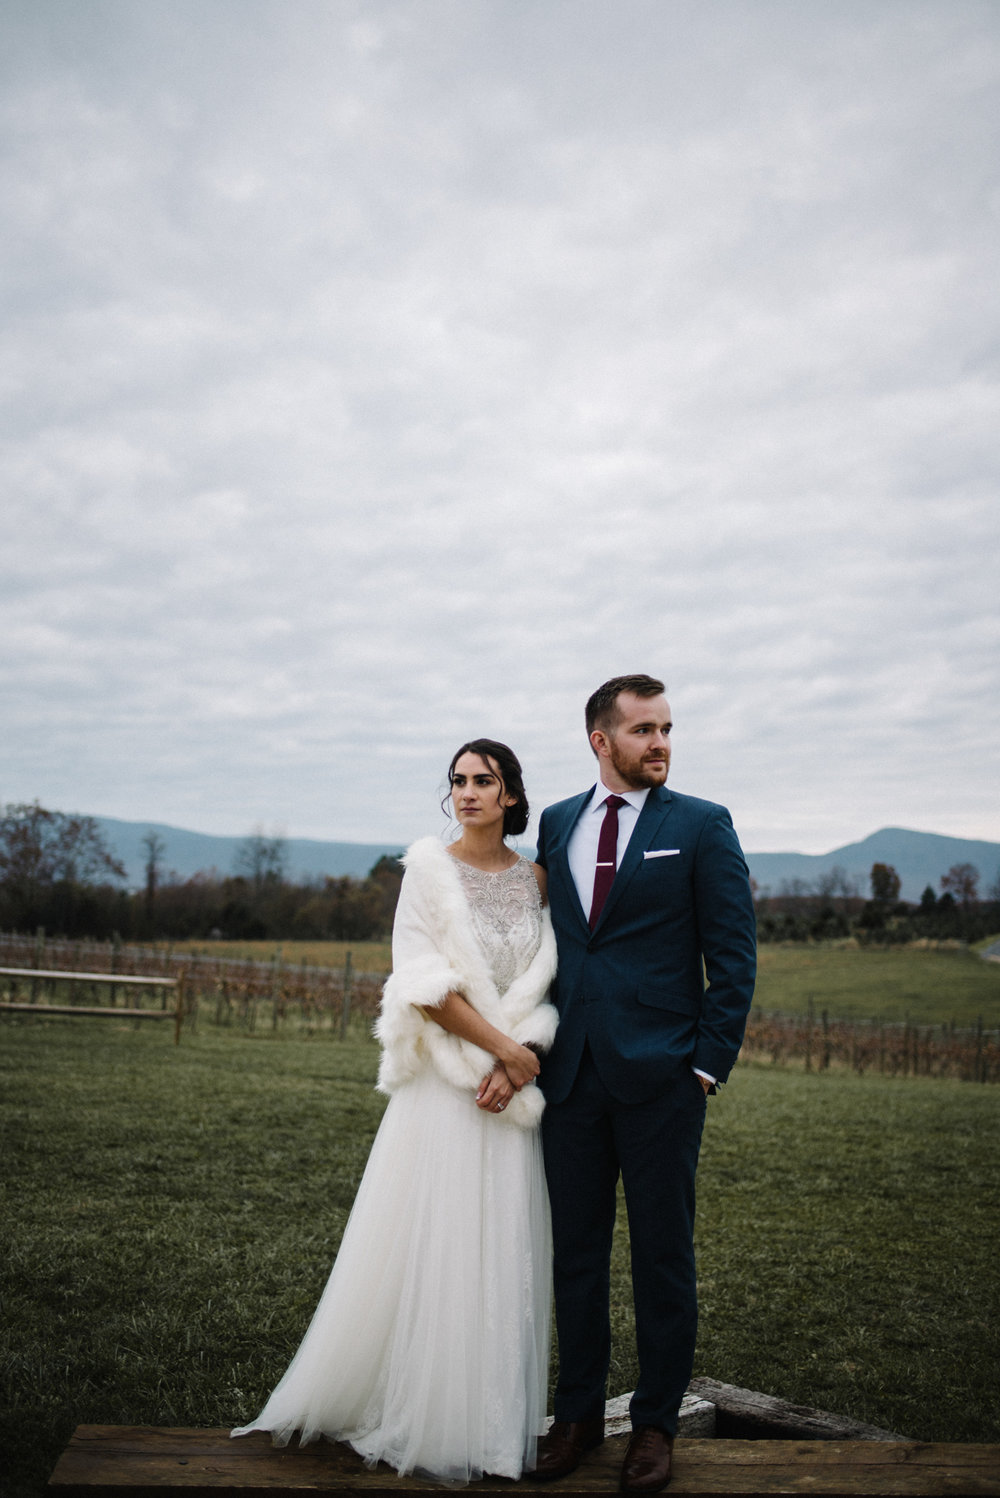 Alyssa and Jesse Winter Vineyard Wedding Luray Virginia Shenandoah Valley Faithbrooke_71.JPG